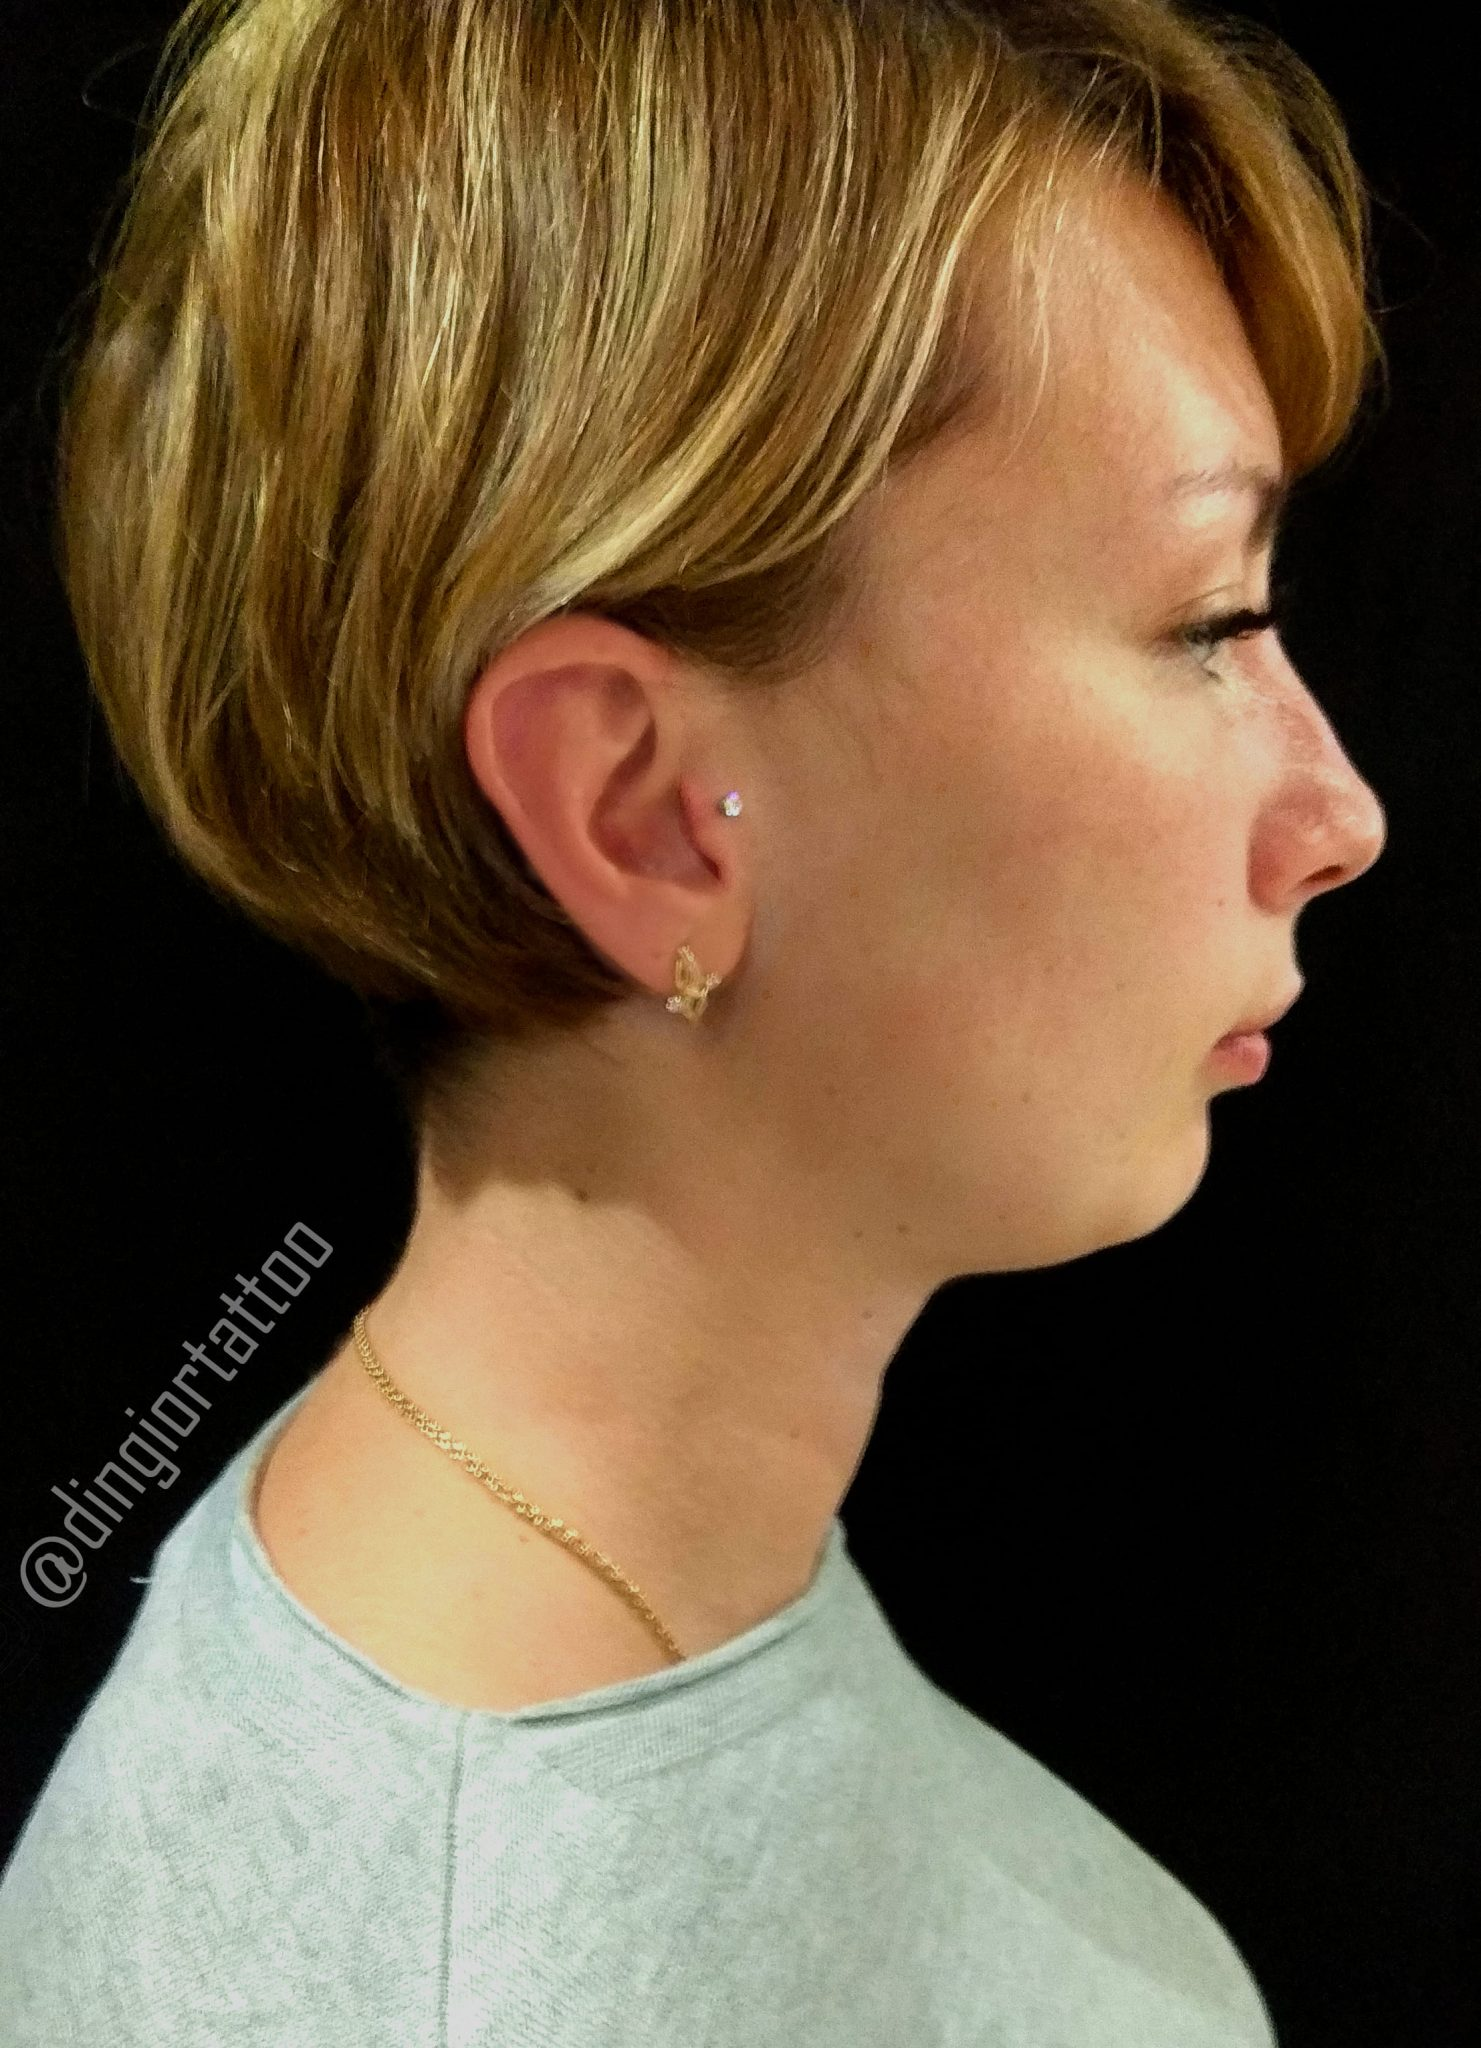 piercing tragus and lobe